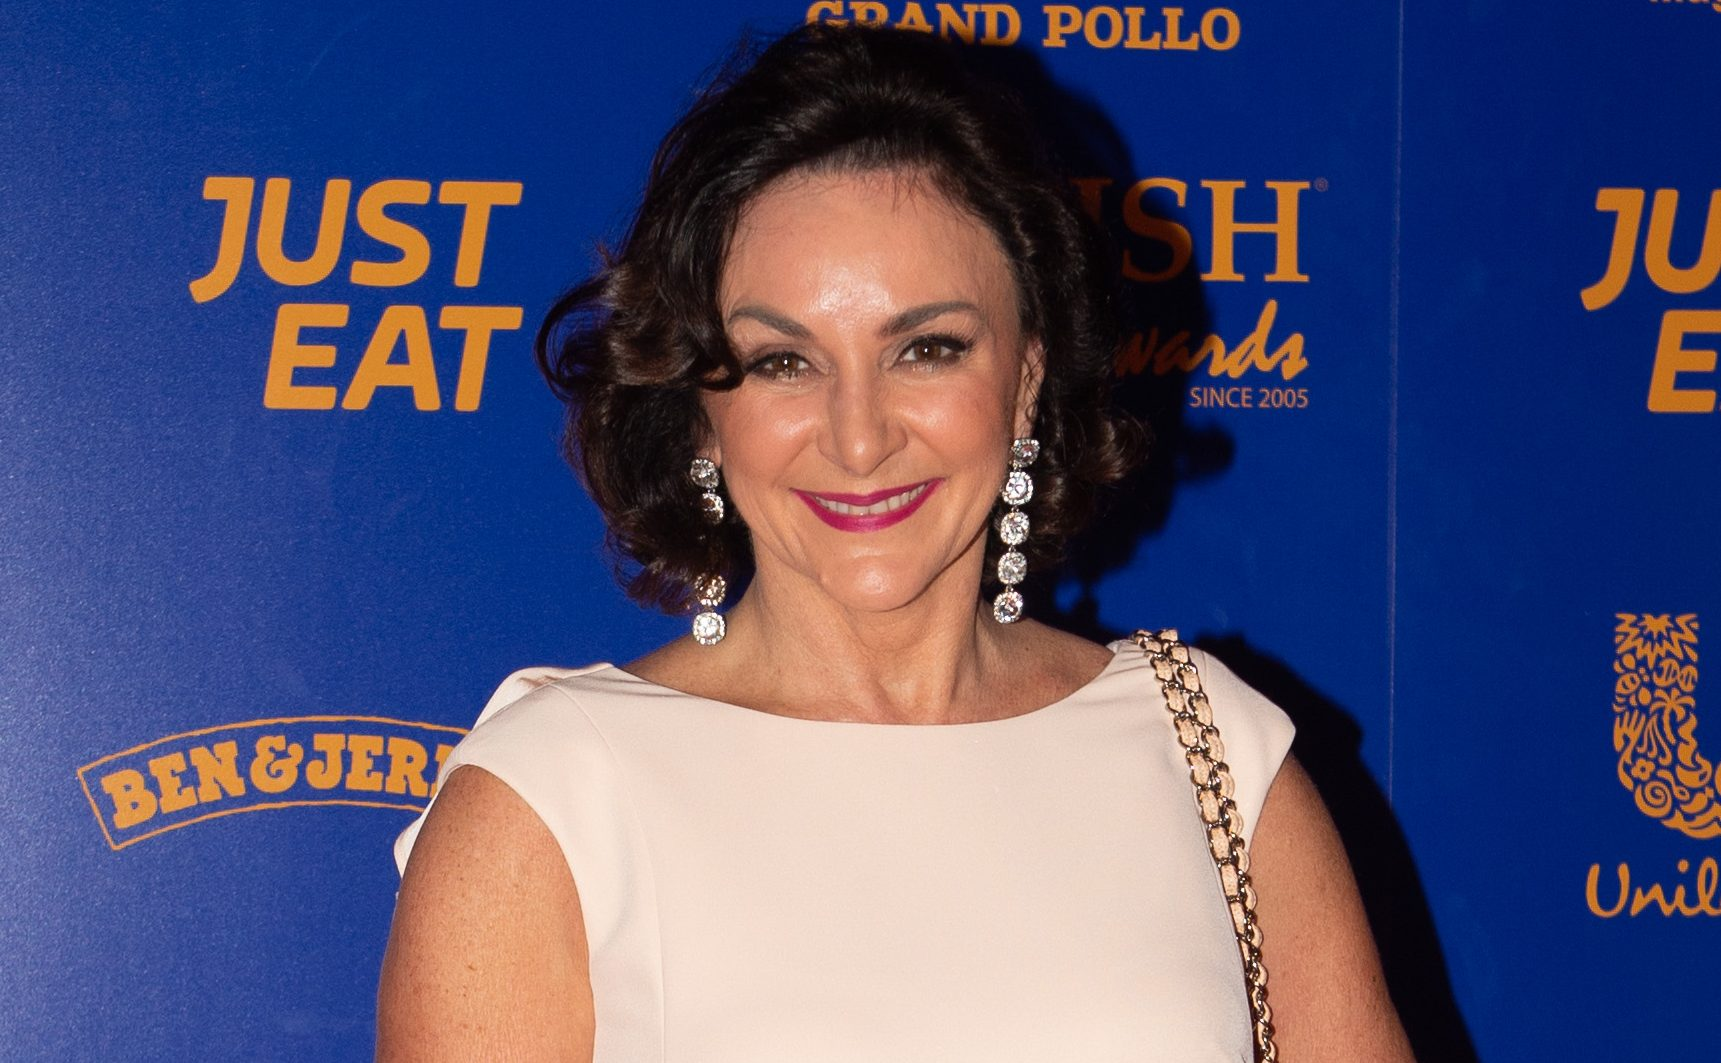 Shirley Ballas blasts 'cowardly' person who sent her vile hatemail